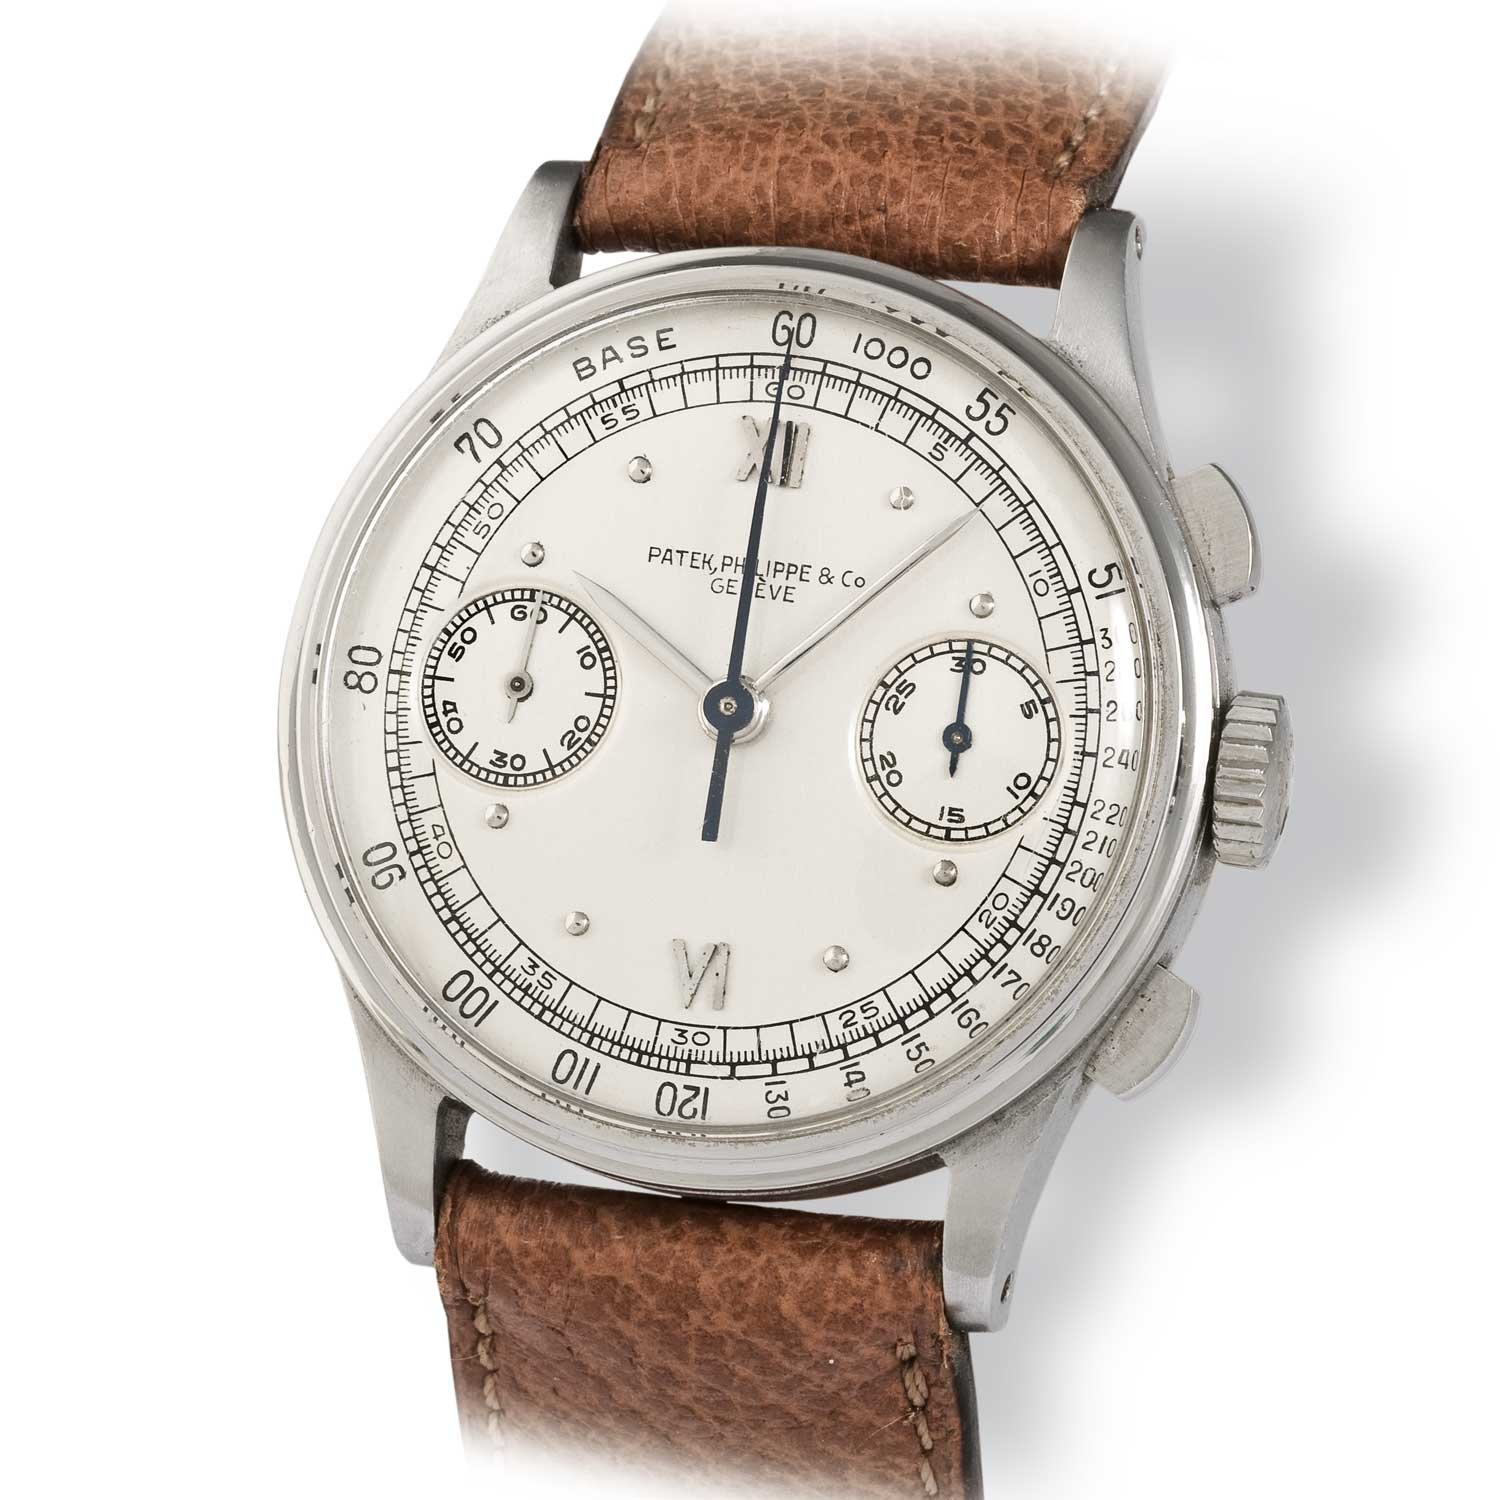 Patek Philippe ref. 130 steel chronograph with Roman numerals (Image: John Goldberger)